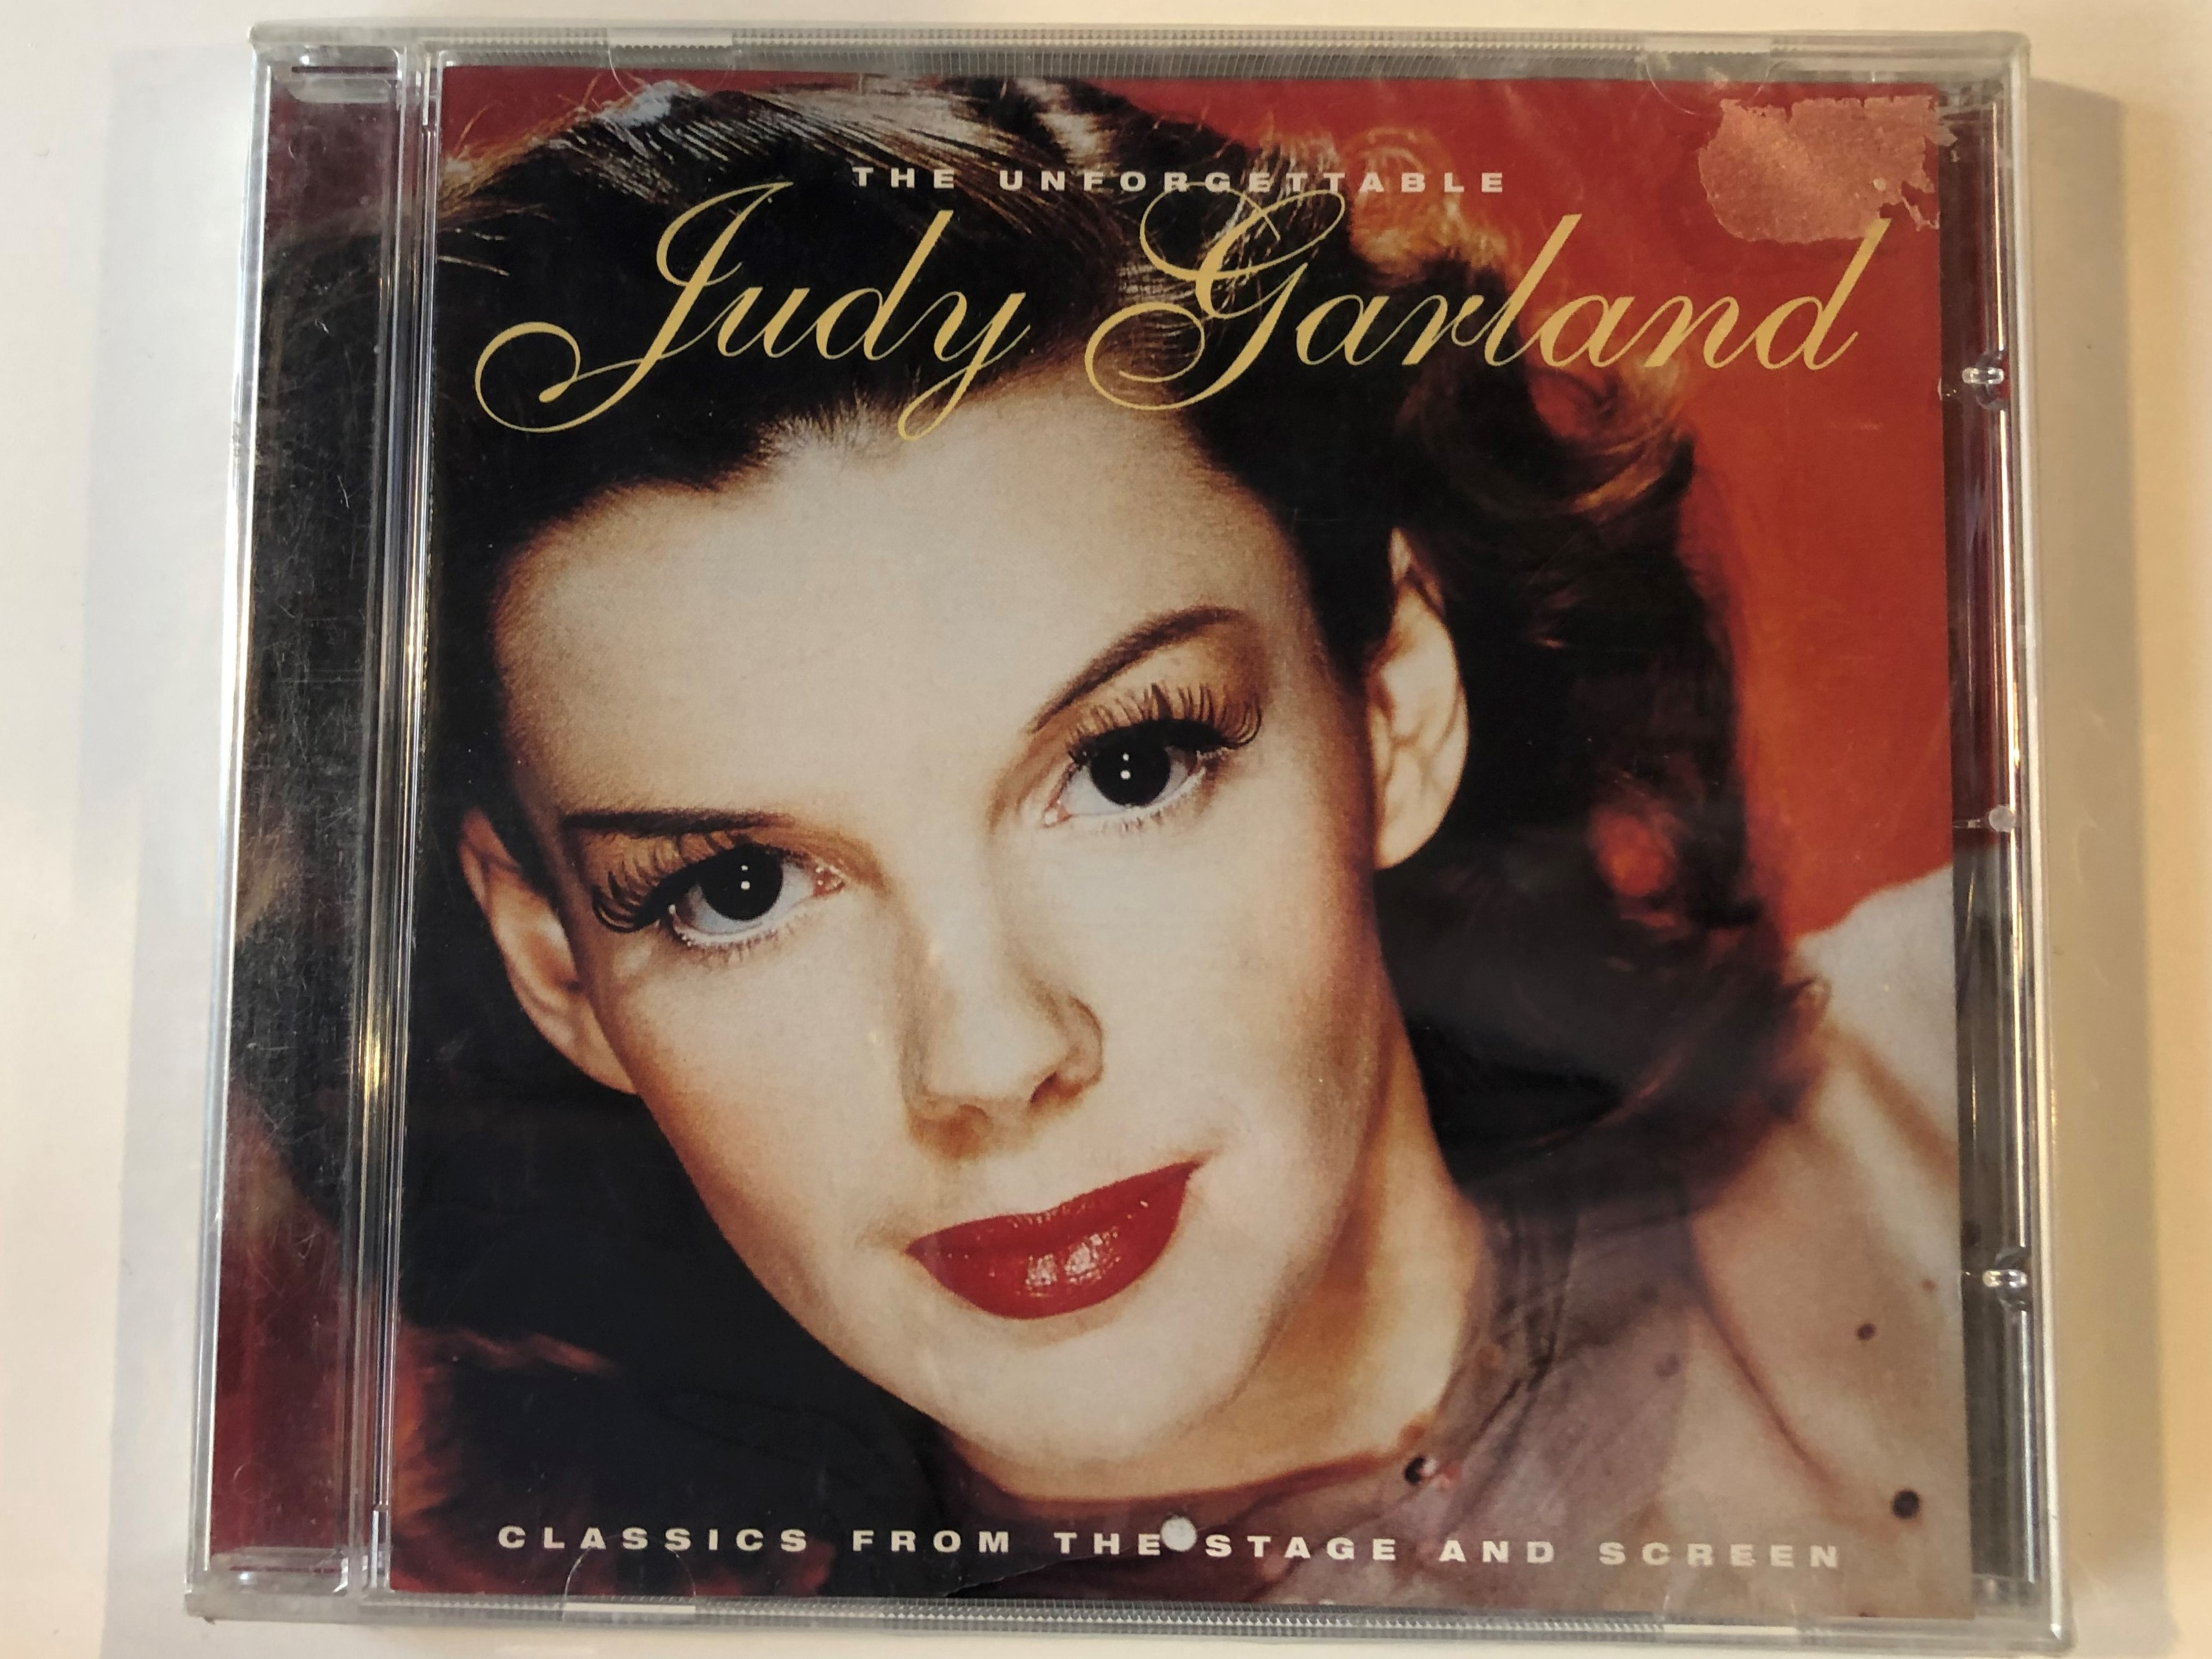 the-unforgettable-judy-garland-classics-from-the-stage-and-screen-e2-audio-cd-1998-etdcd-073-1-.jpg